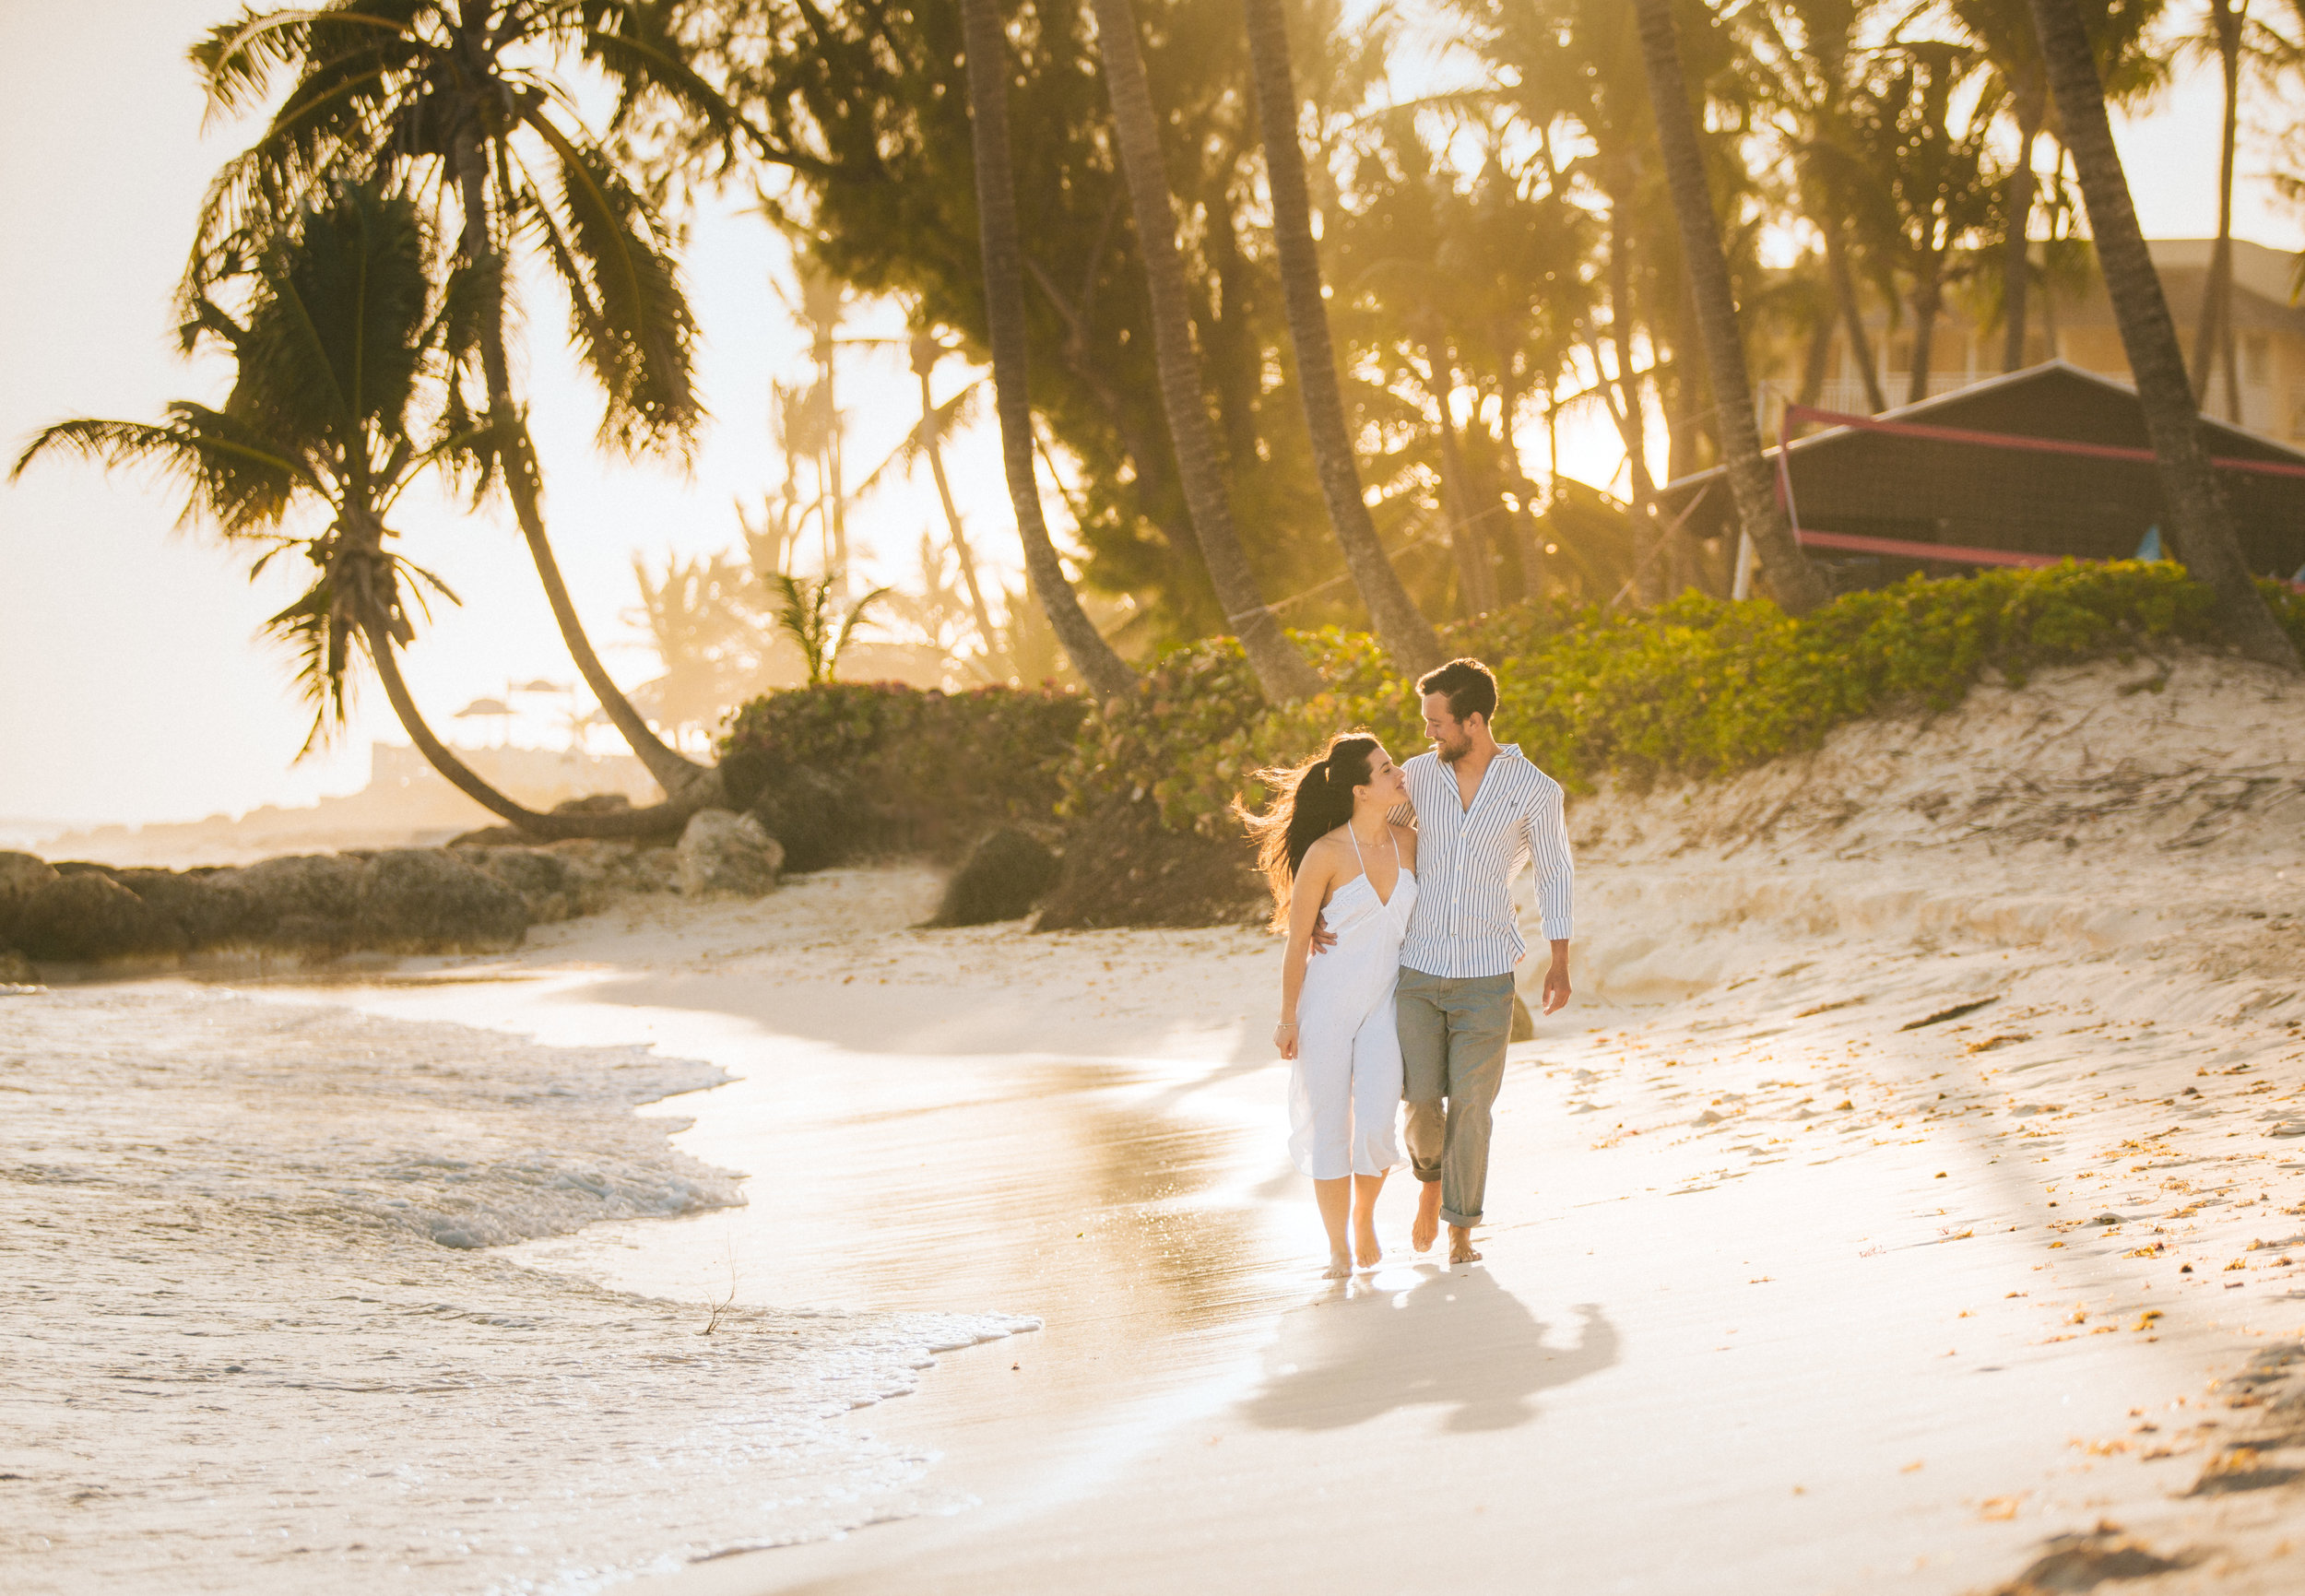 Barbados Wedding - Wedding couple walking along beach